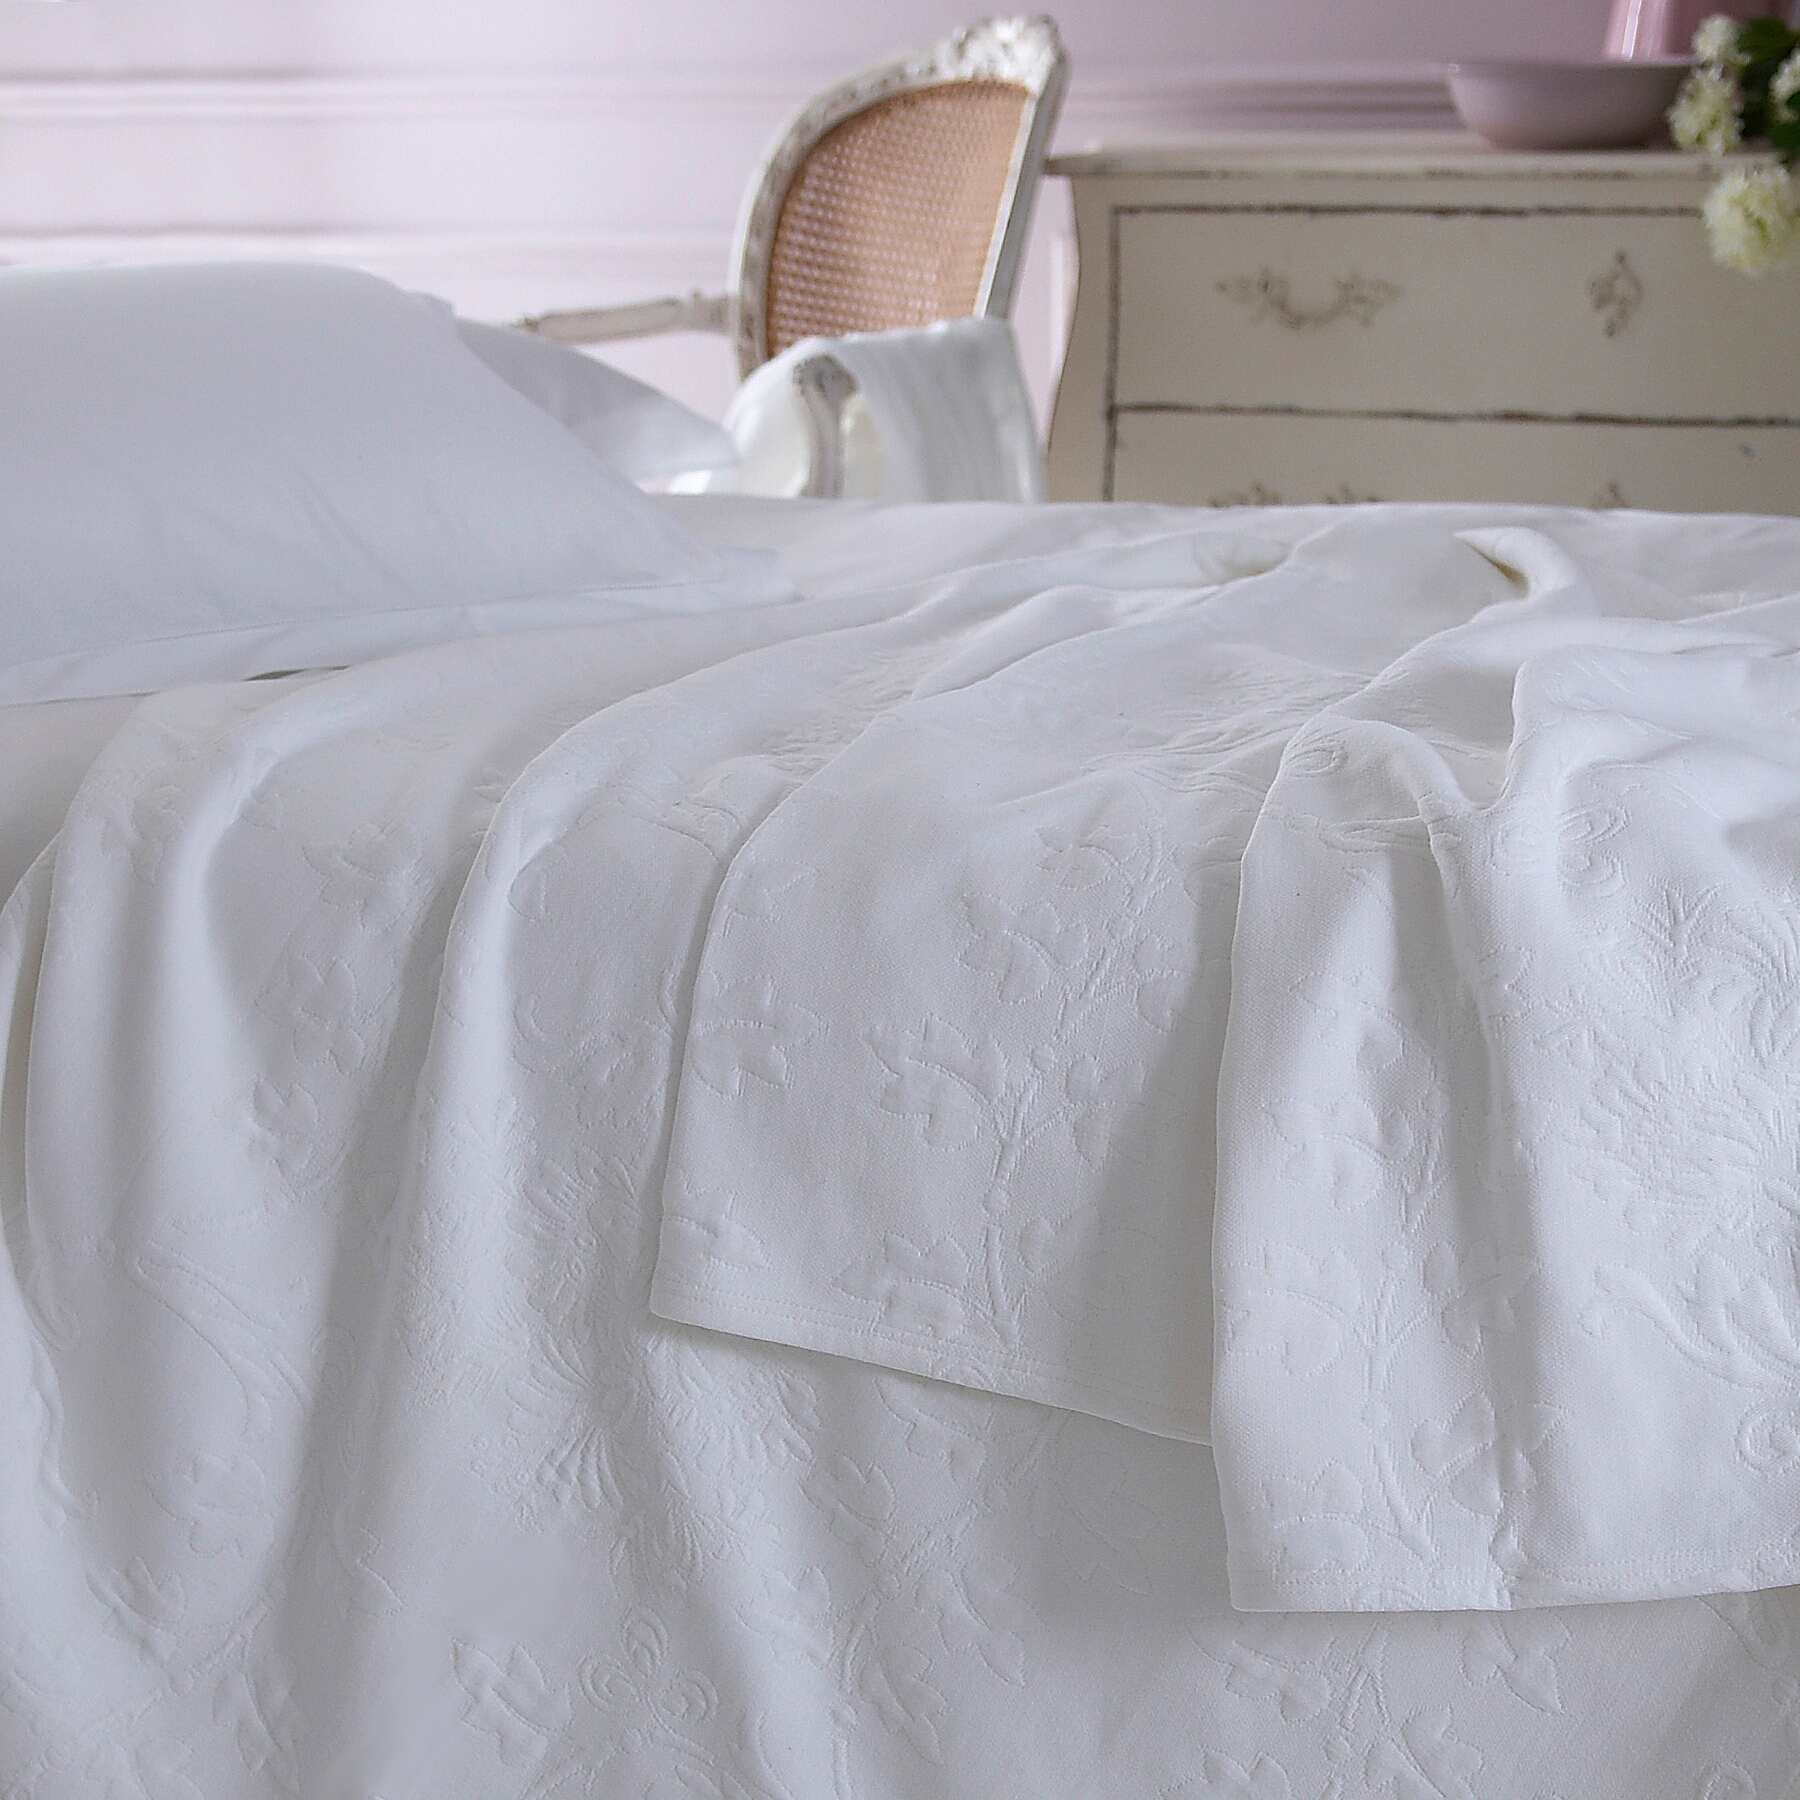 quilts company chain diamond natural product stitch contemporary with quilt stitched bed juno